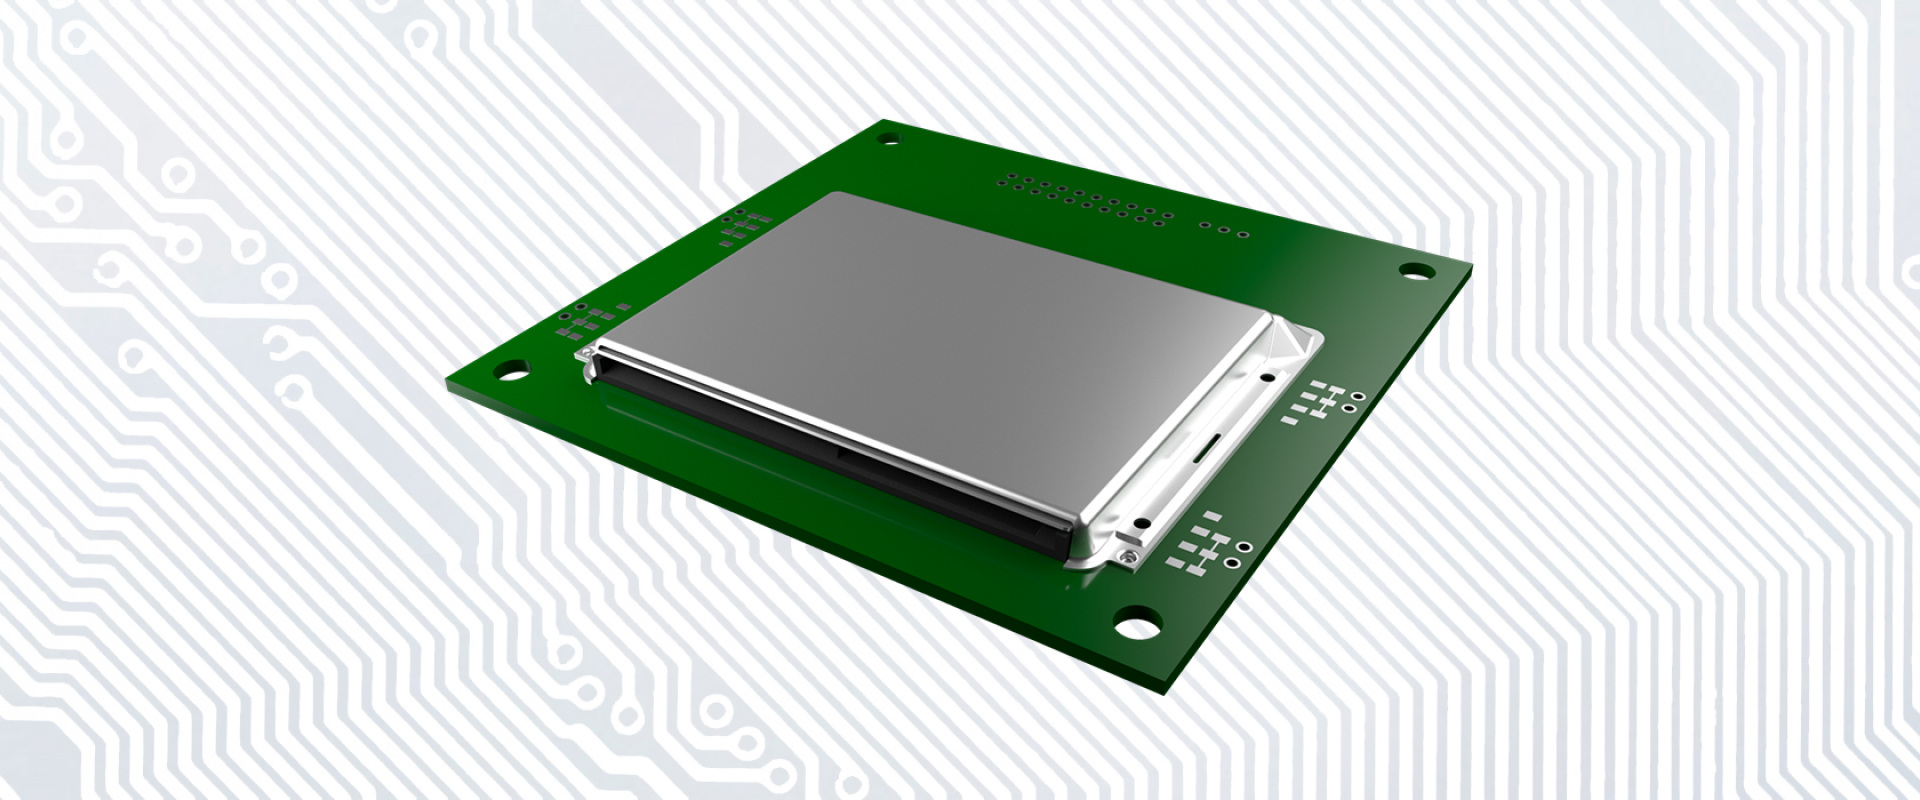 Anti-tamper secure cover PCI compliant